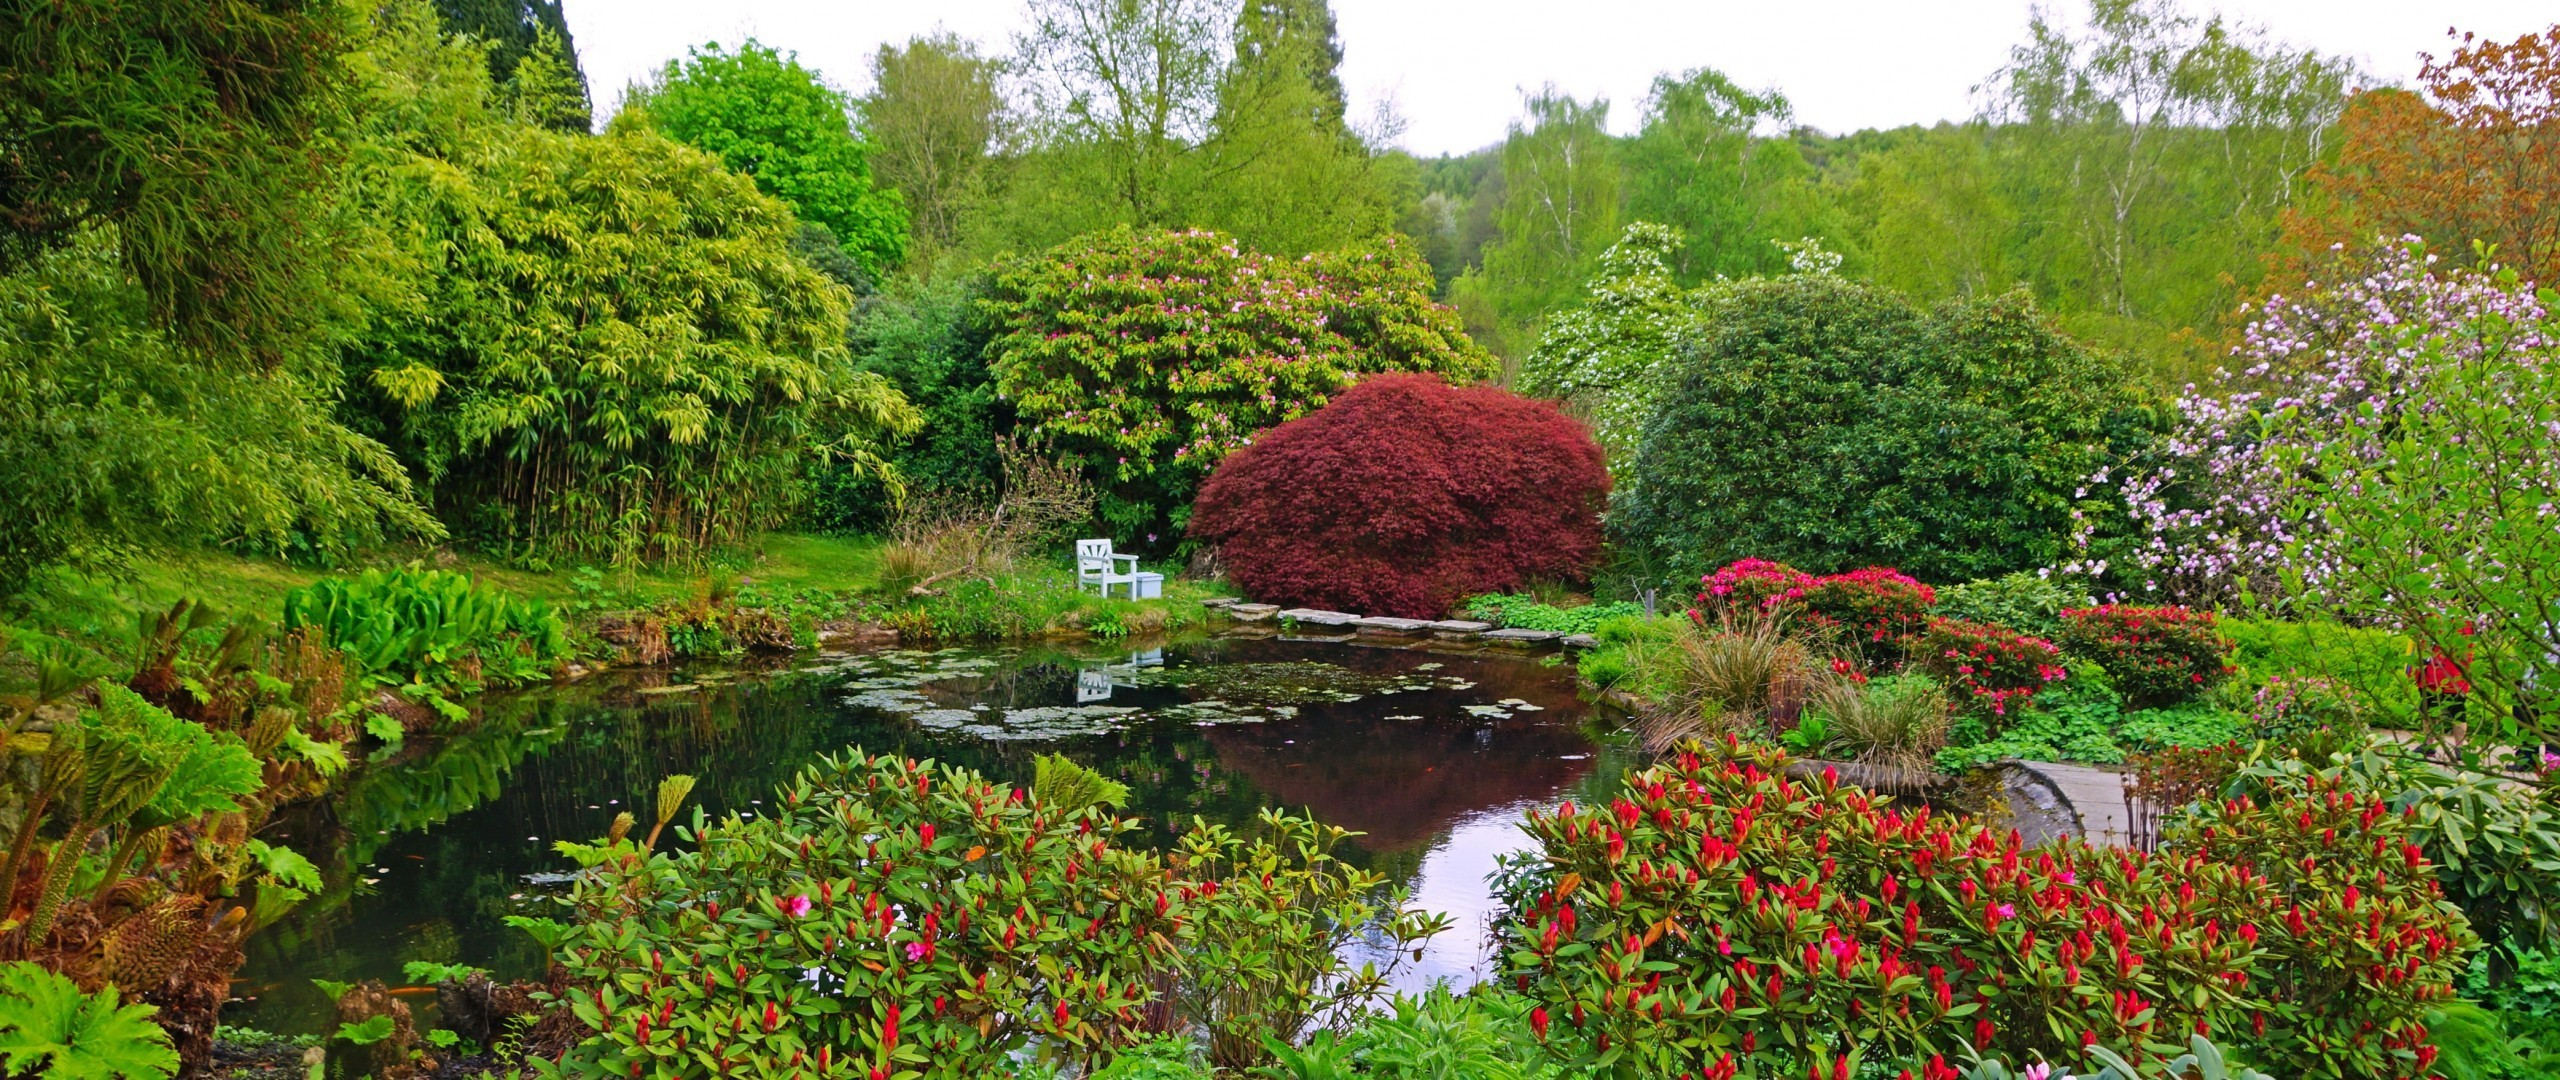 2560x1080 Flowers, Garden, England, Trees, Forest, Pond